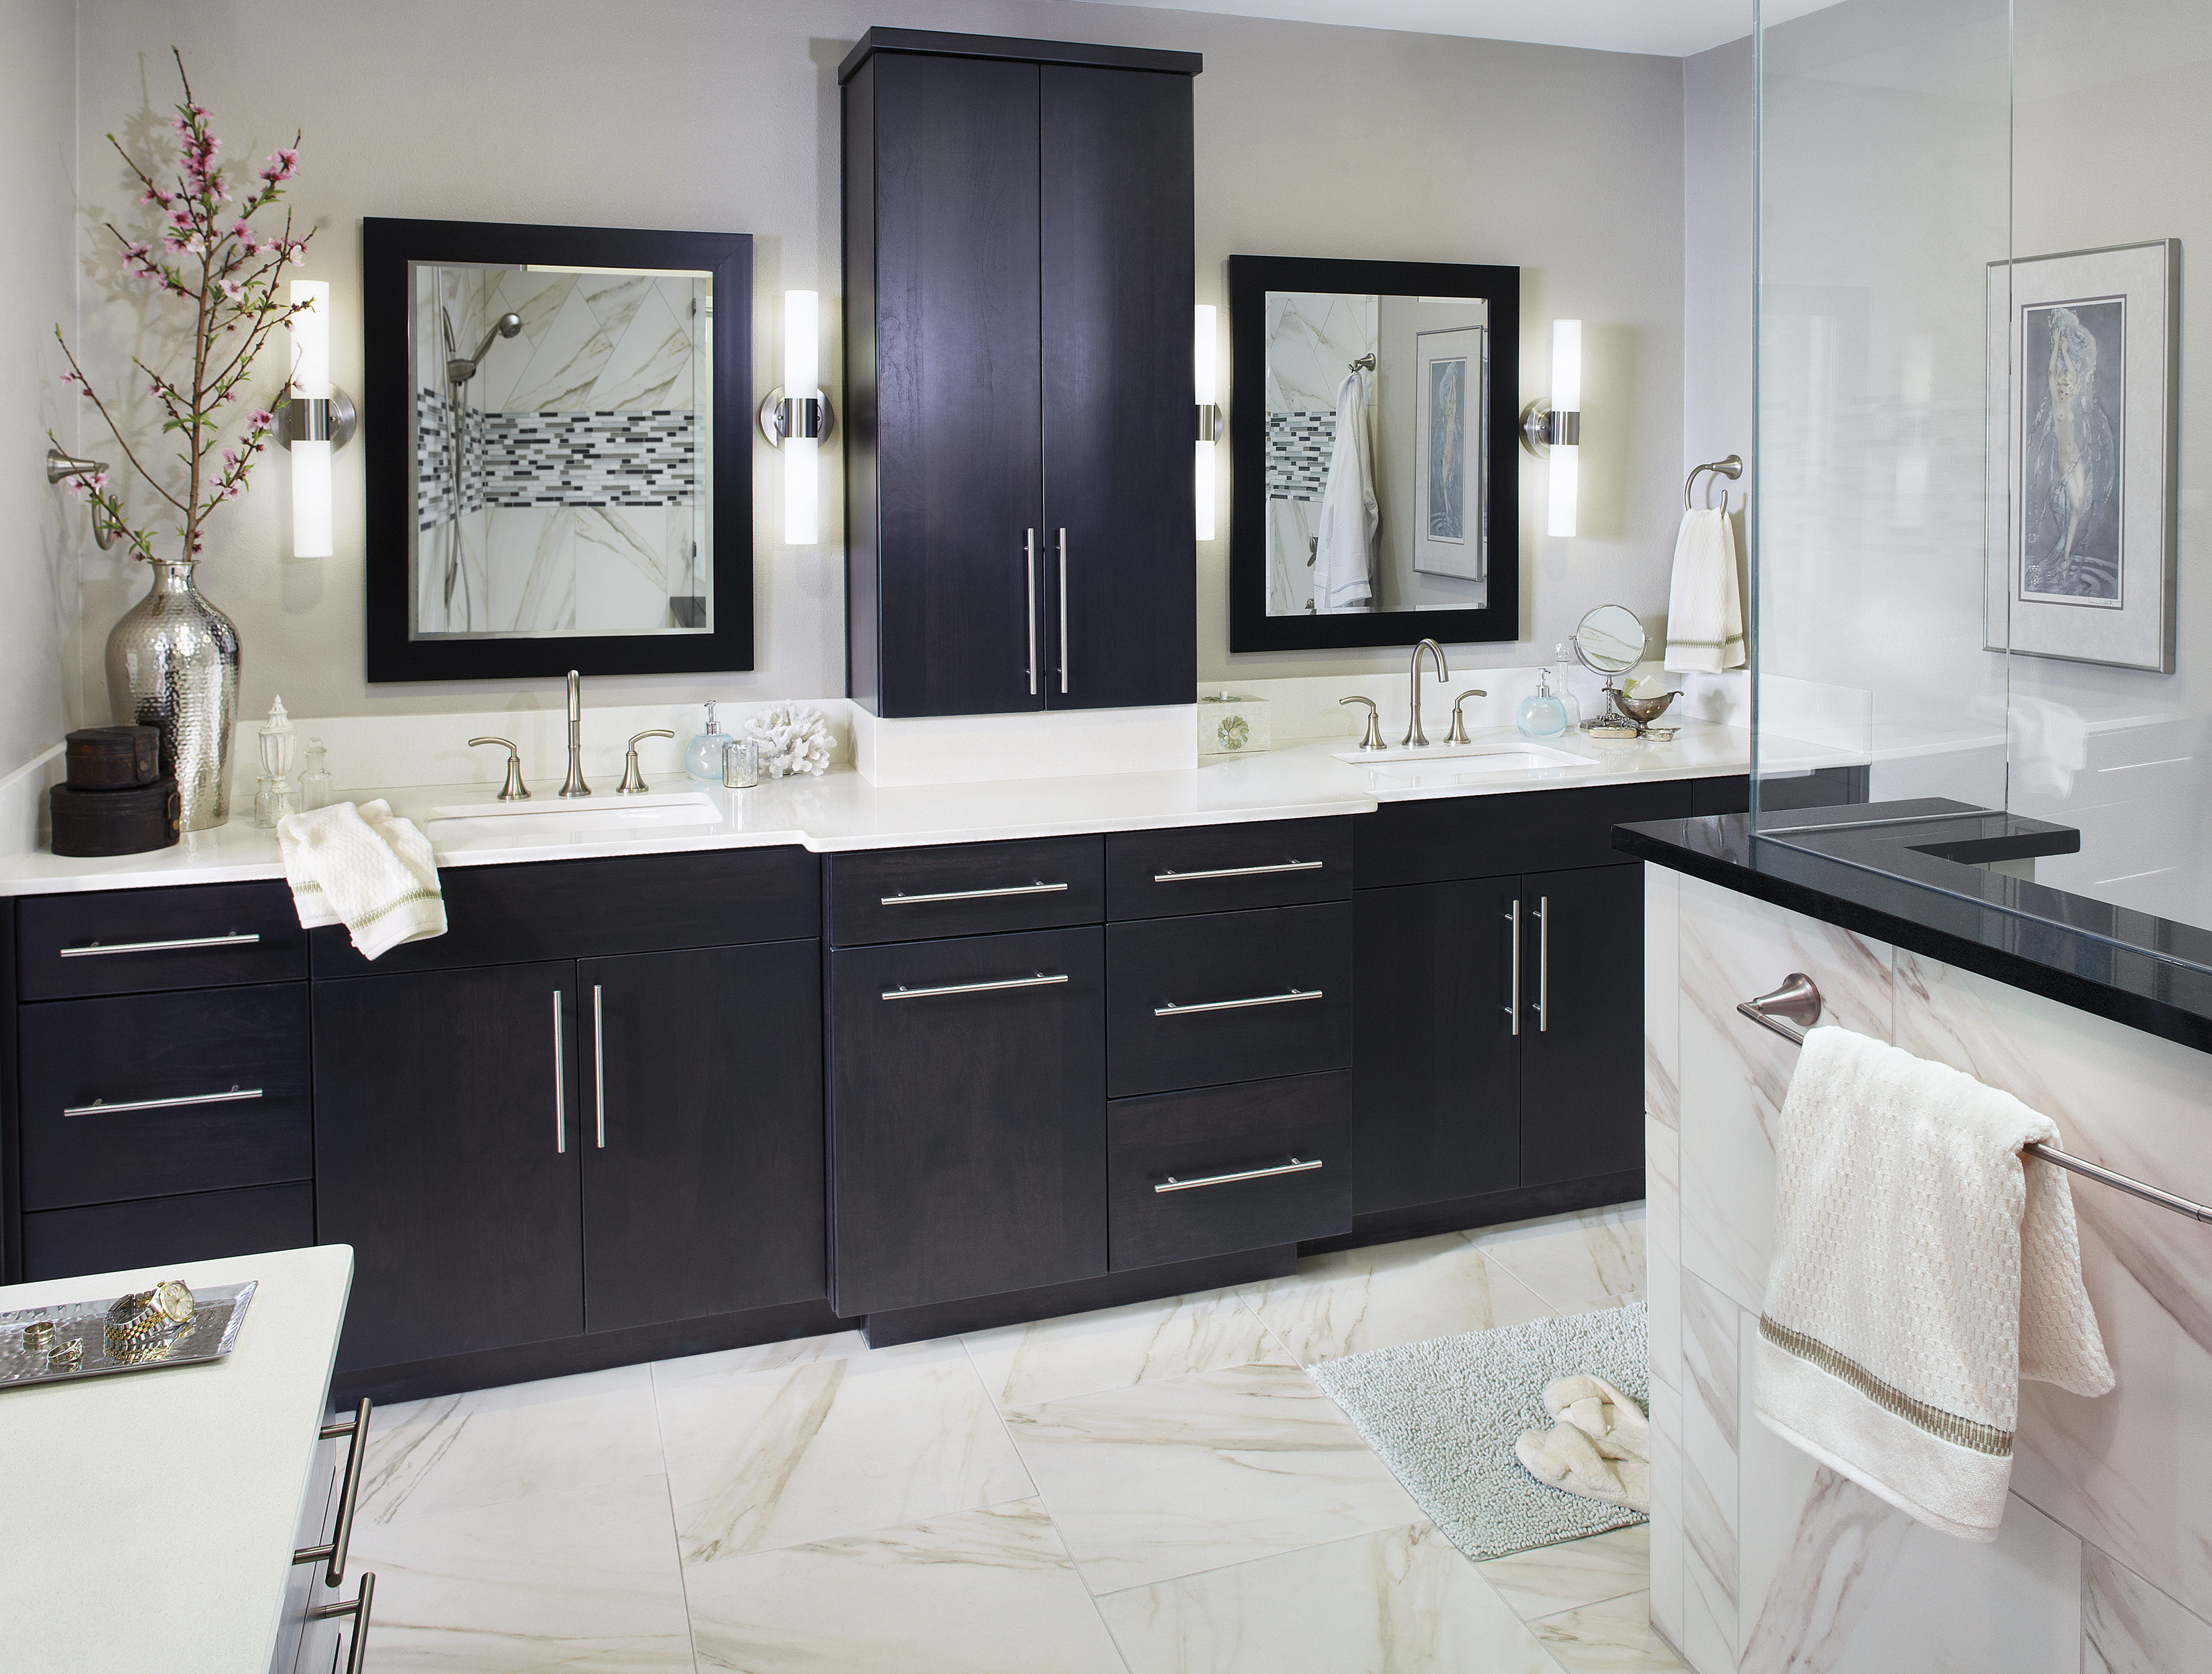 Black and White Master Bathroom Cabinetry